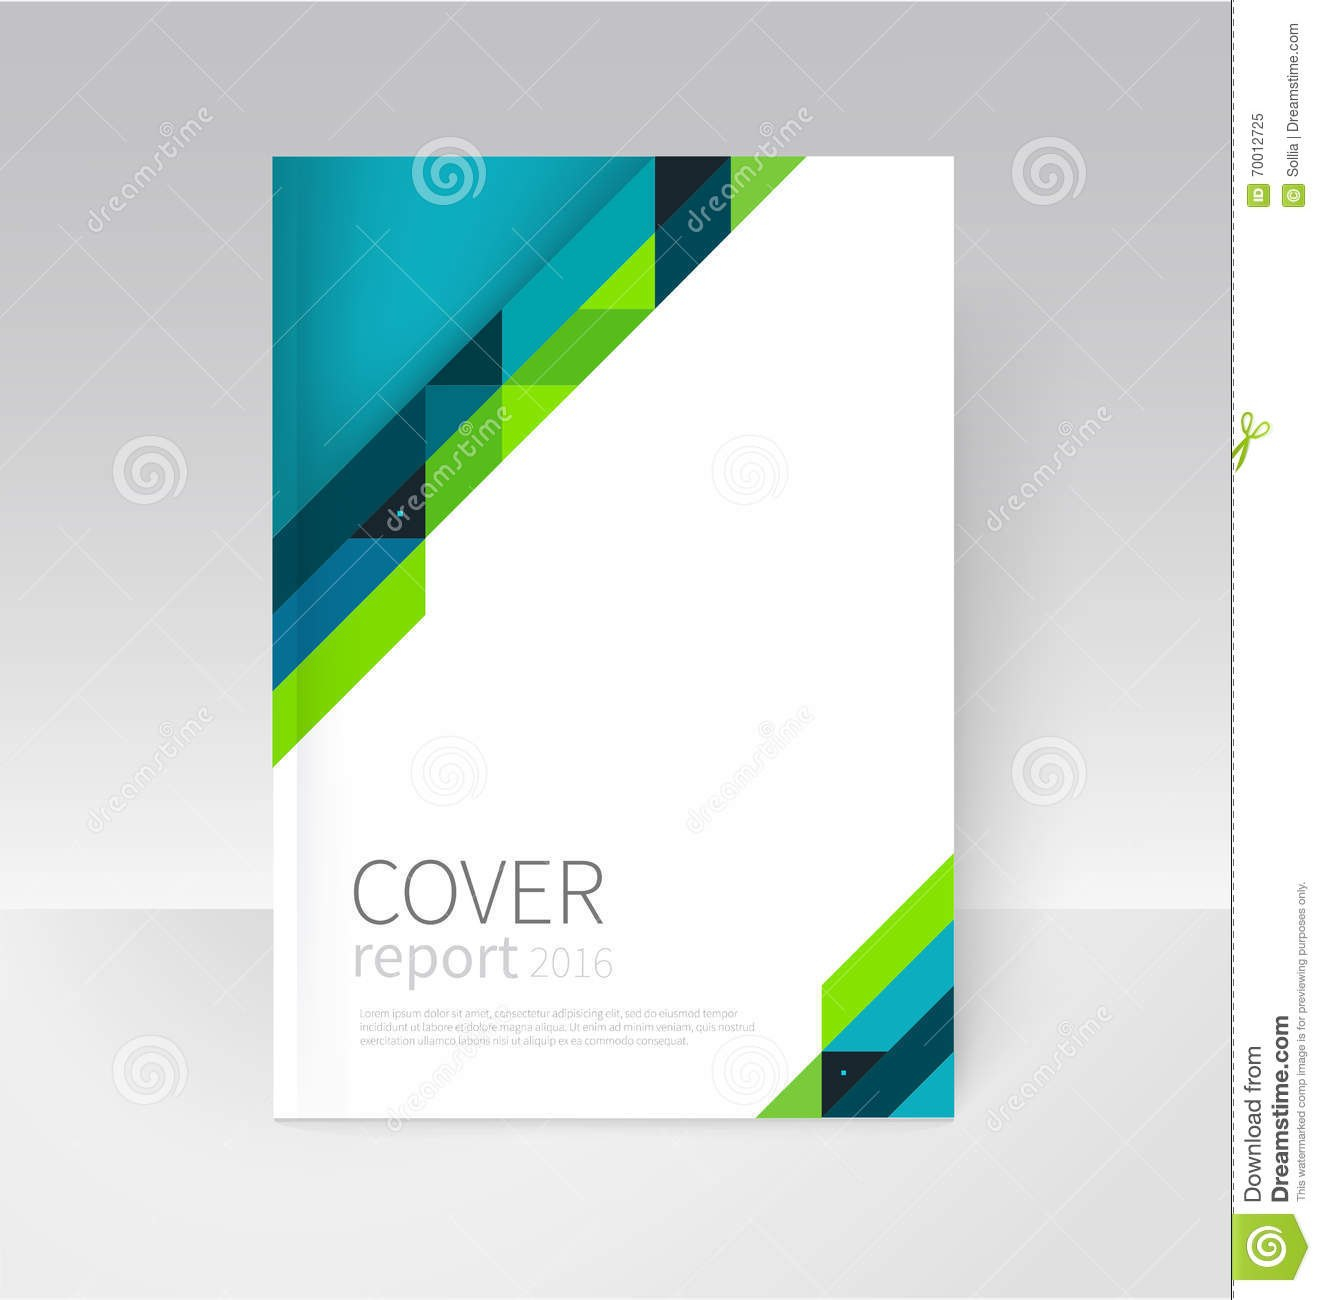 Microsoft Word Cover Pages Templates Brochure Flyer Poster With Microsoft Word Cover Page Templates Download